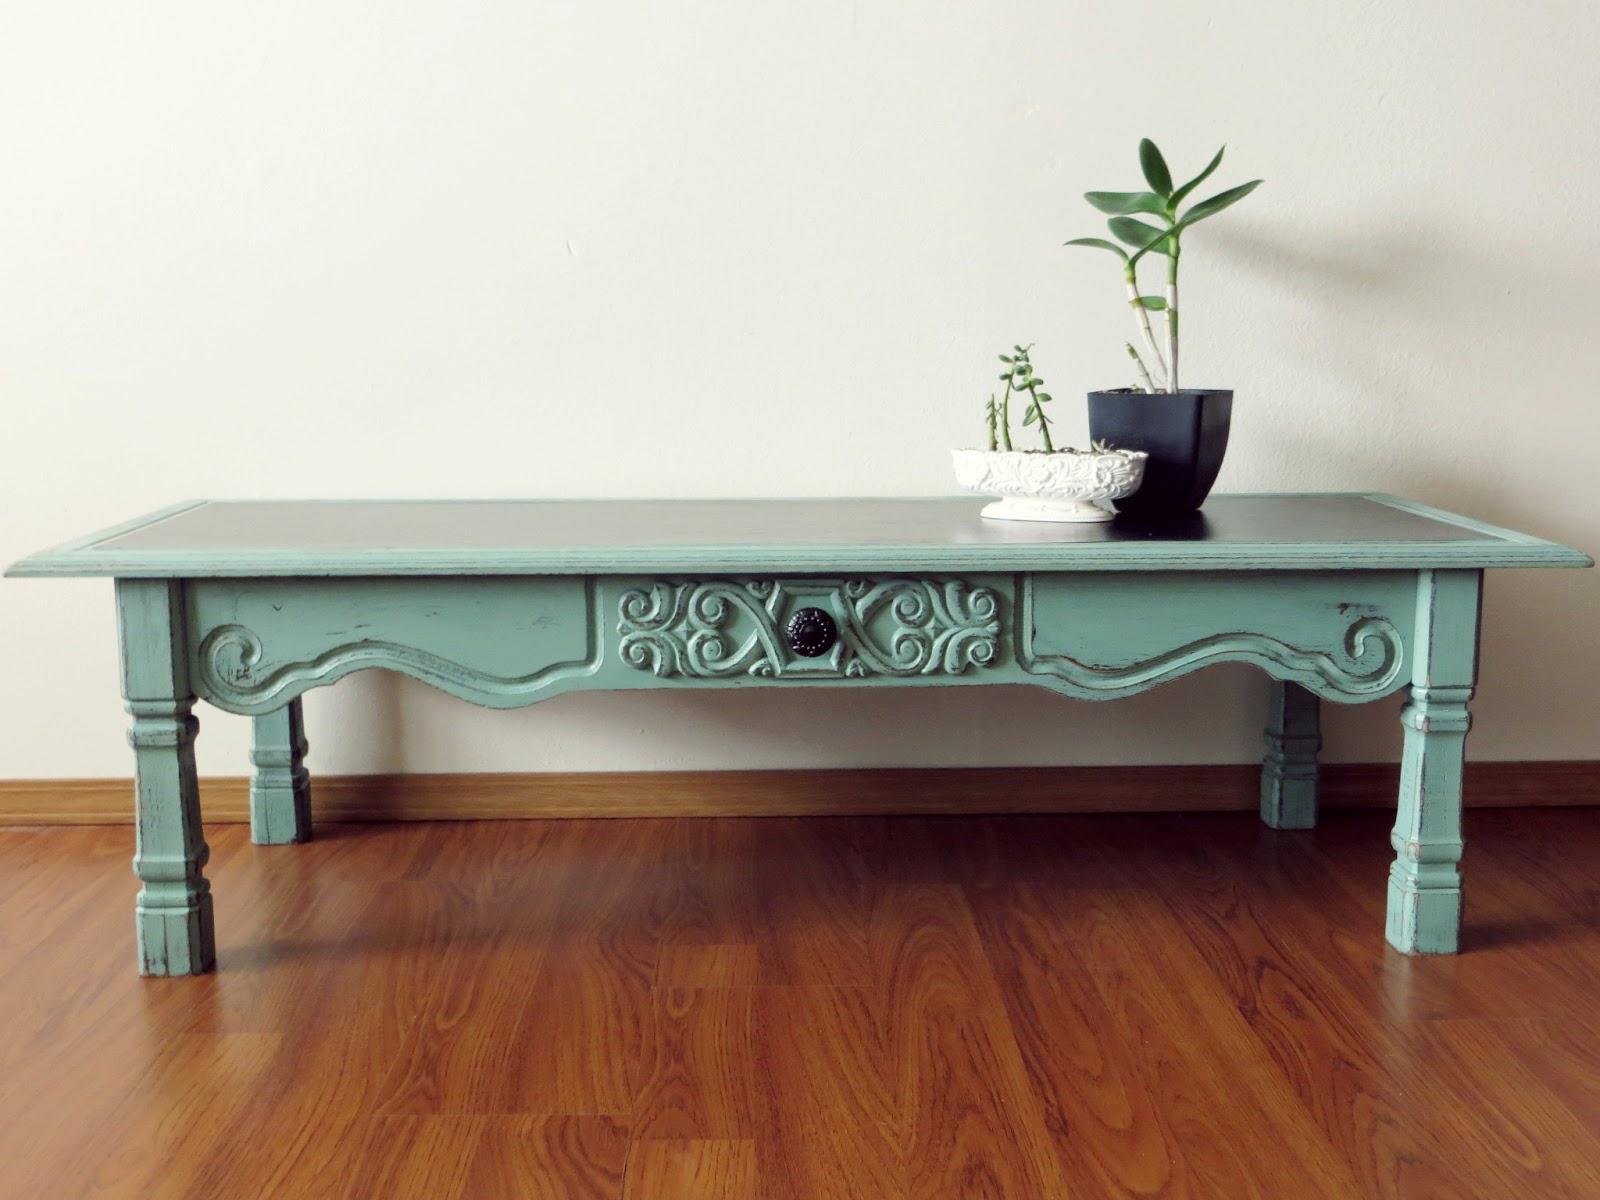 Brand-new Namely Original: Distressed Coffee Table Tutorial QN17